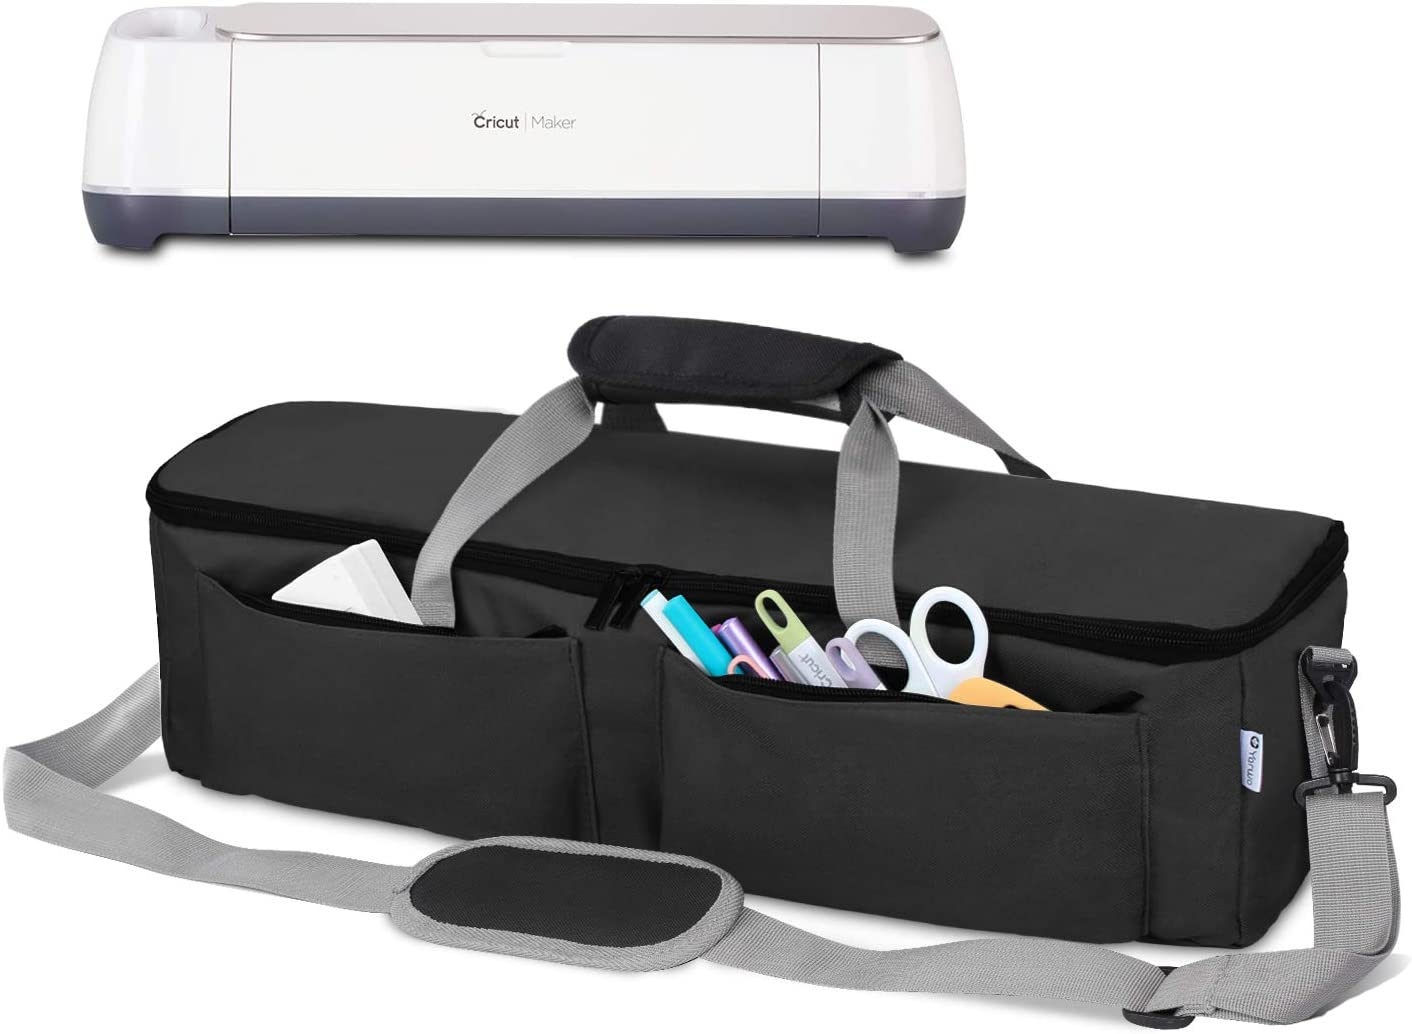 Carrying Bags for Cricut Die-Cut Machine and Accessories Storage Bag Travel Air